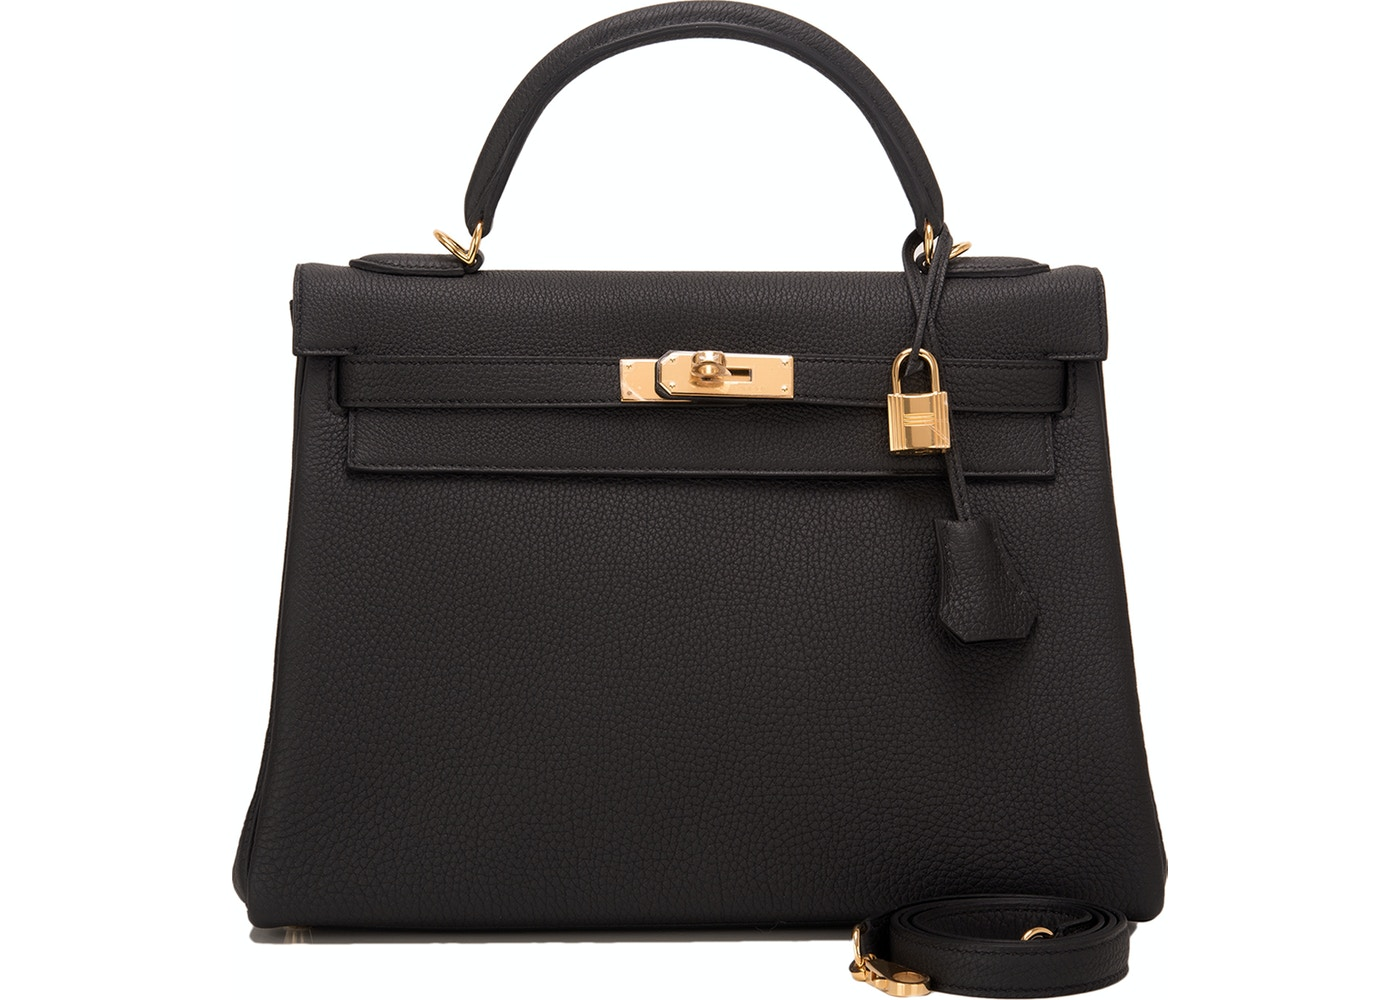 080cb0847d3c Sell. or Ask. View All Bids. Hermes Kelly Retourne Togo 32 Noir